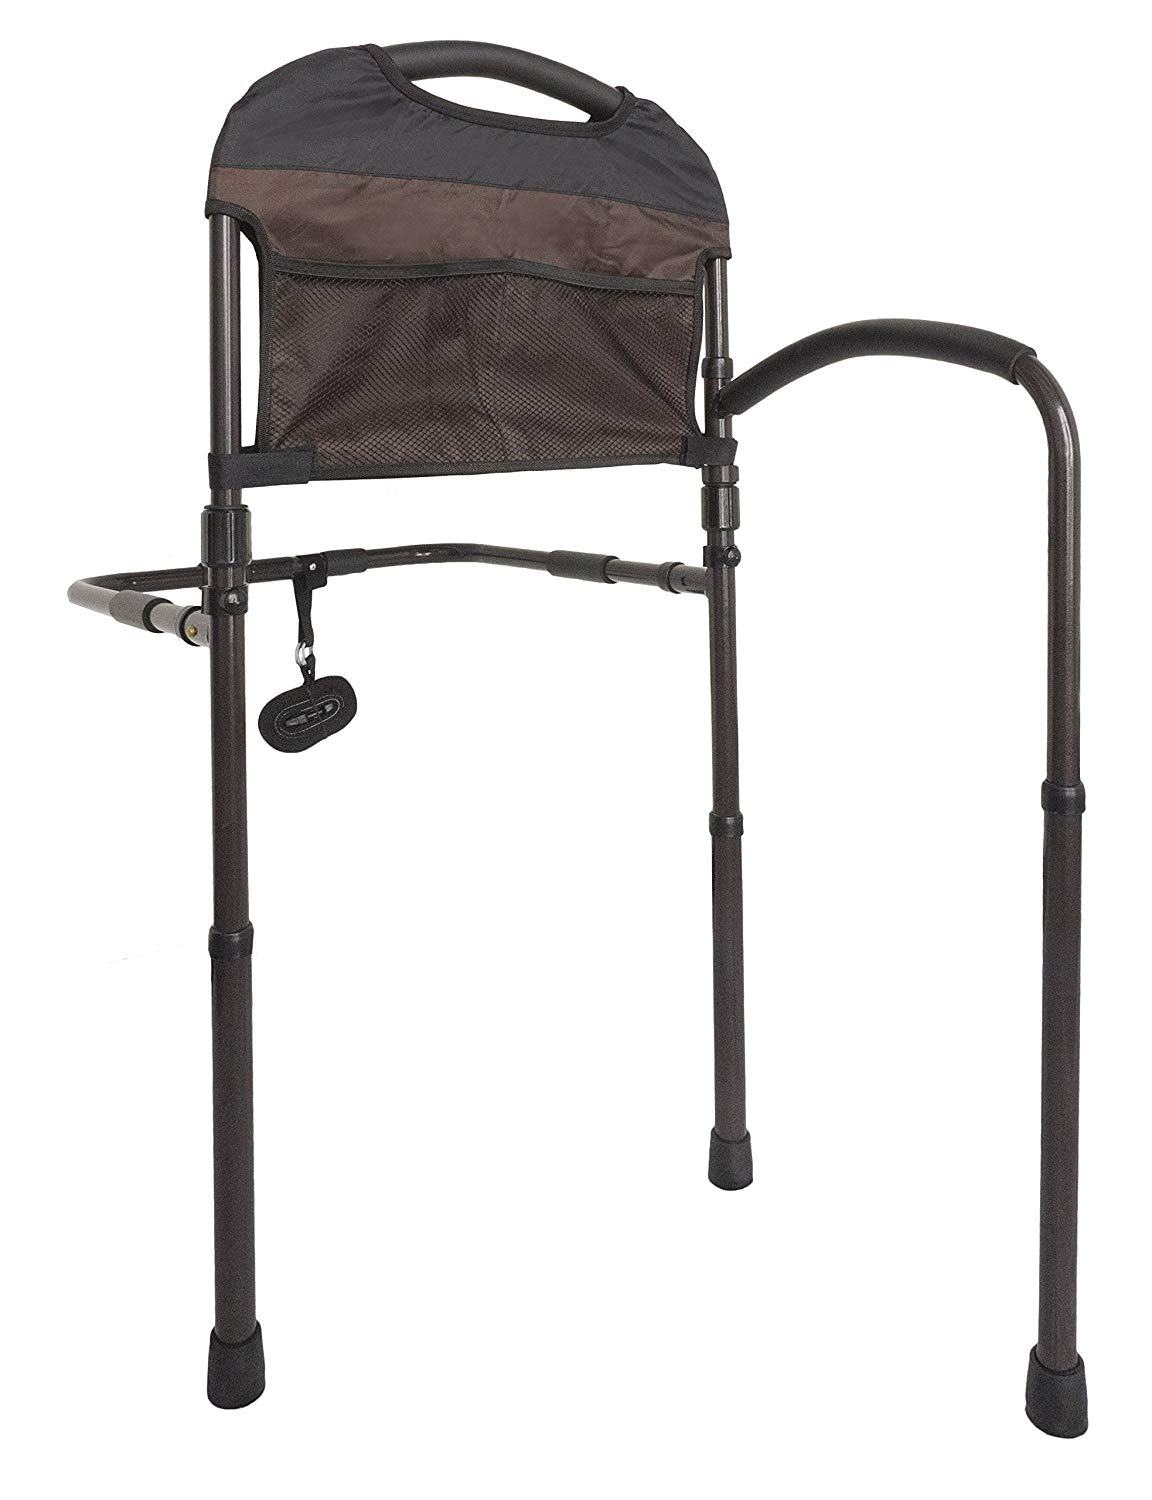 Stander-Mobility-Adult-Home-Bed-Rail--Elderly-Support-Bed-Handle--Swing-Out-Mobility-Arm--Adustable-Legs-Floor-Support--Pouch